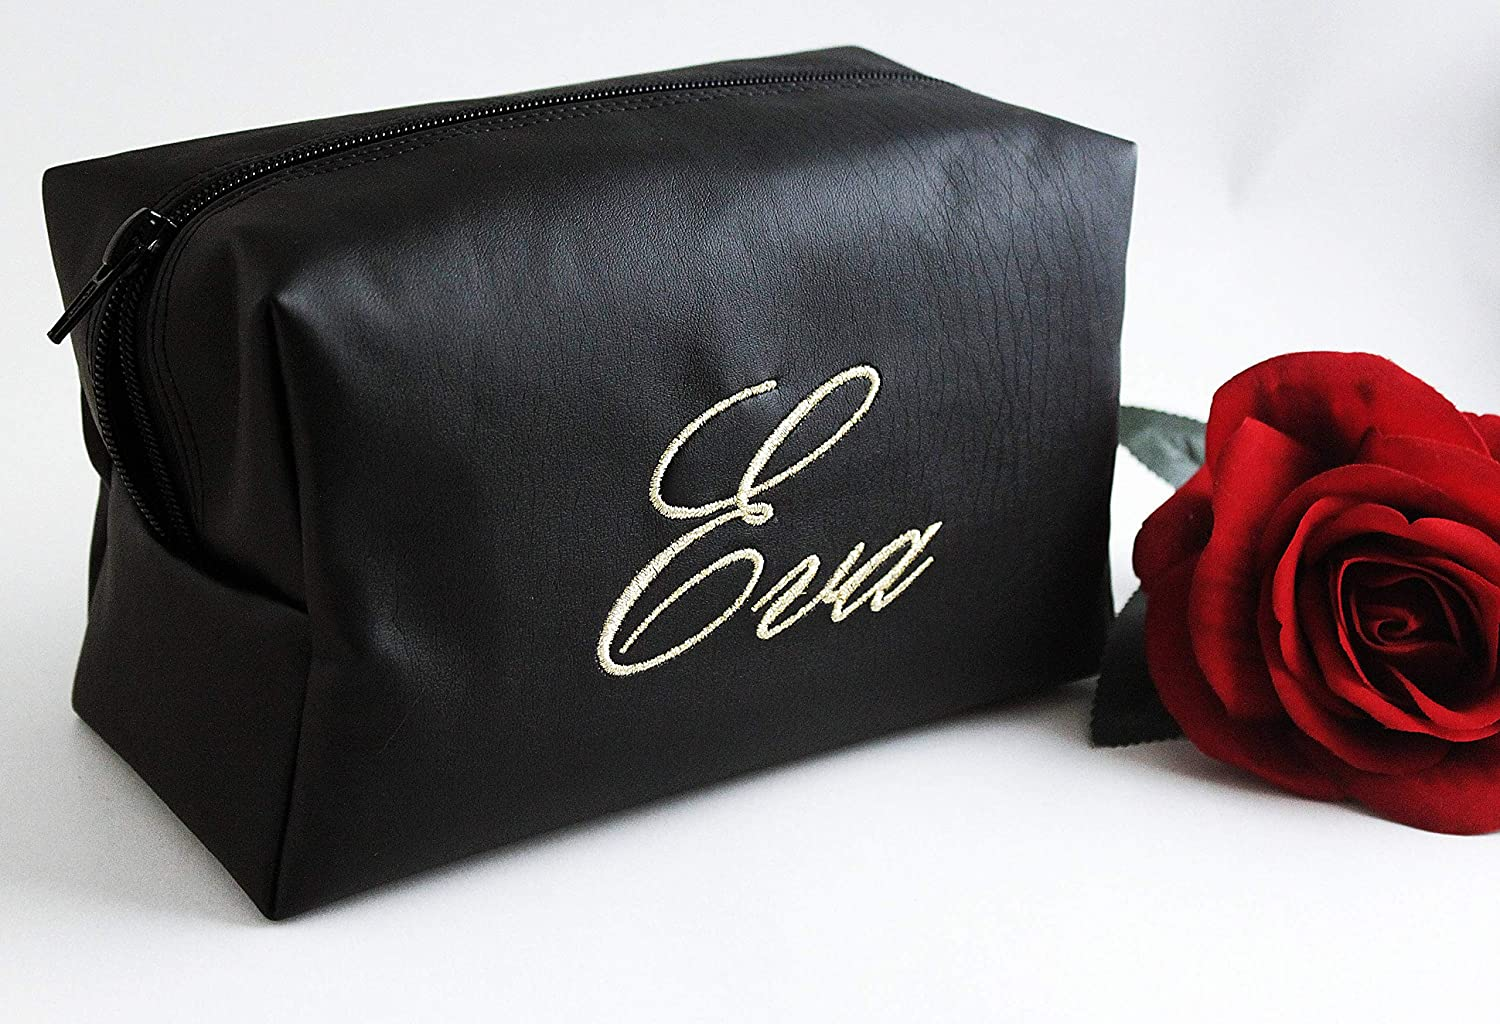 Travel Bag Groomsmen Gifts Toiletry Bag Gifts for Him Personalized Gifts